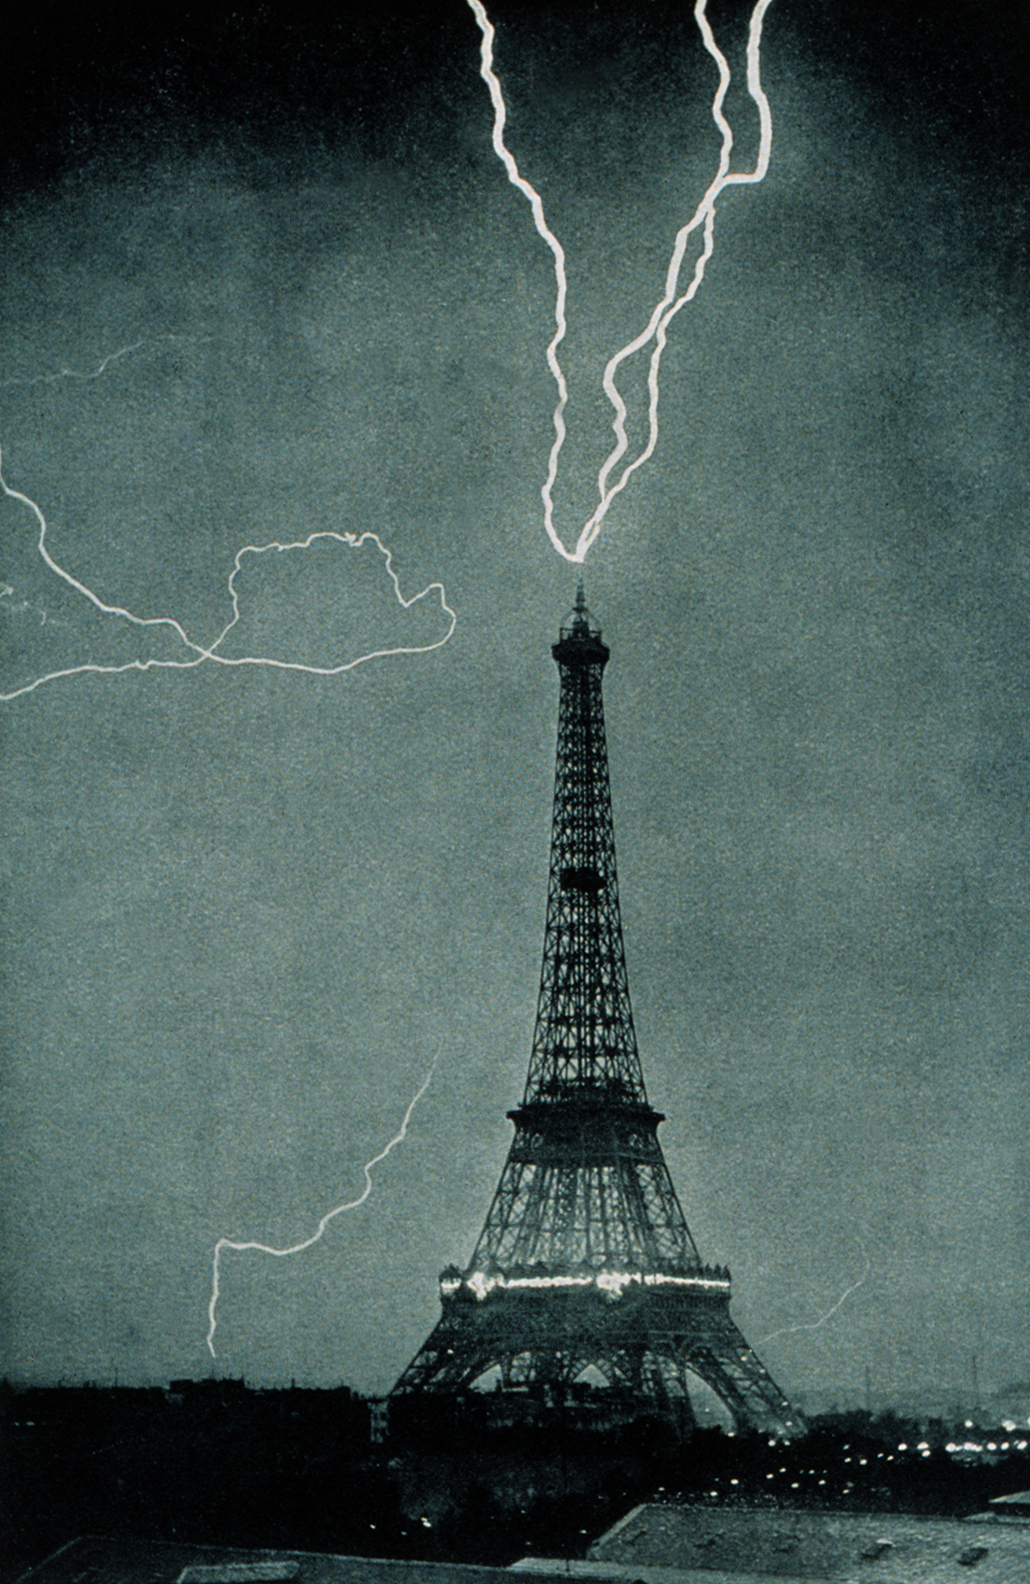 Lightning strikes the Eiffel Tower